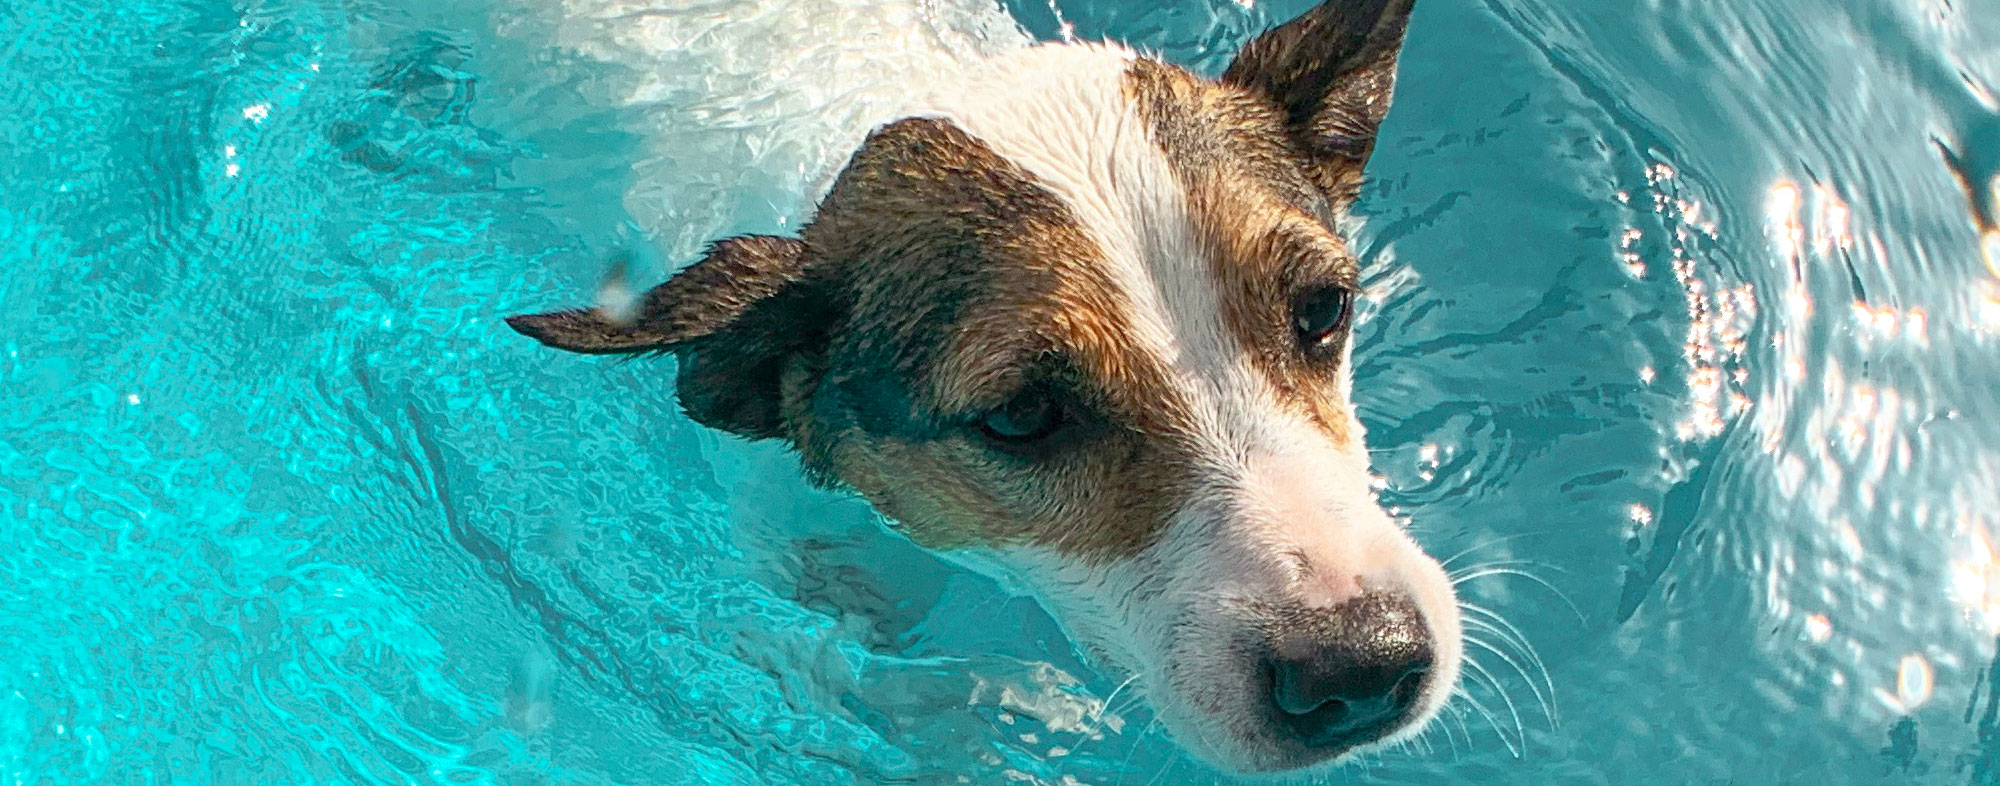 Swimming in the pool is perfect for dogs in hot weather